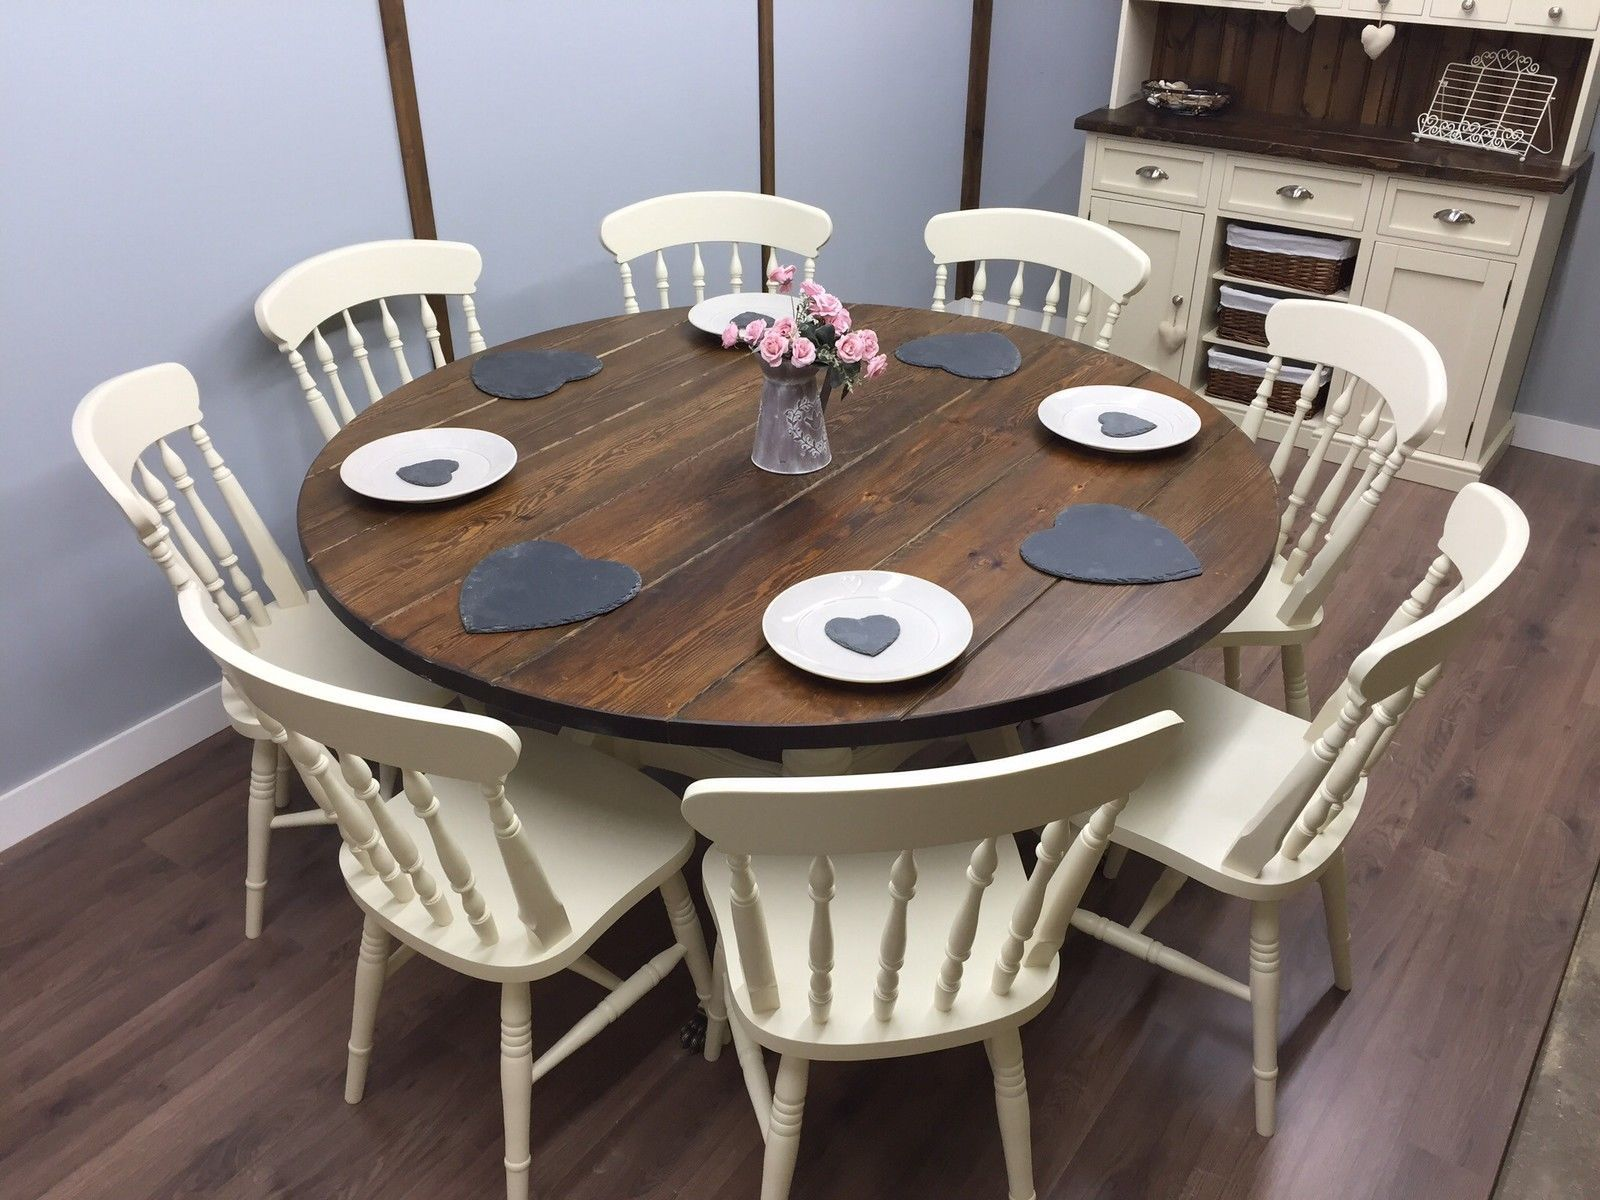 large round farmhouse table and chairs 6 8 seater shabby chic delivery available ebay. Black Bedroom Furniture Sets. Home Design Ideas